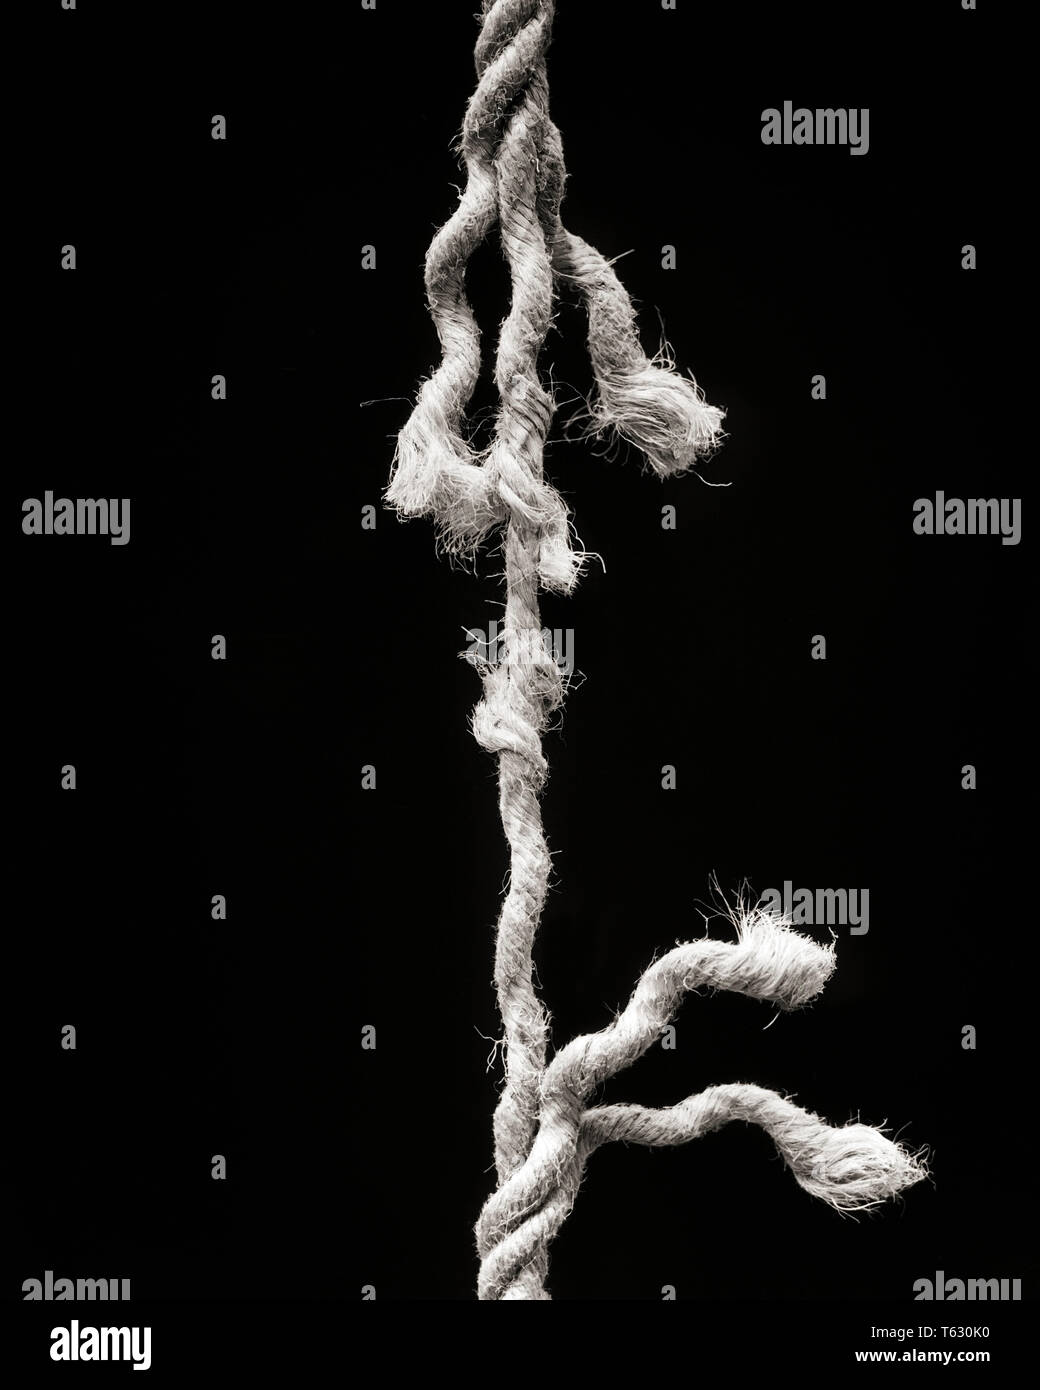 1930s HEMP ROPE UNWINDING READY TO BREAK STRETCHED TO BREAKING POINT HANGING BY A THREAD - s4393 HAR001 HARS REPRESENTATION - Stock Image